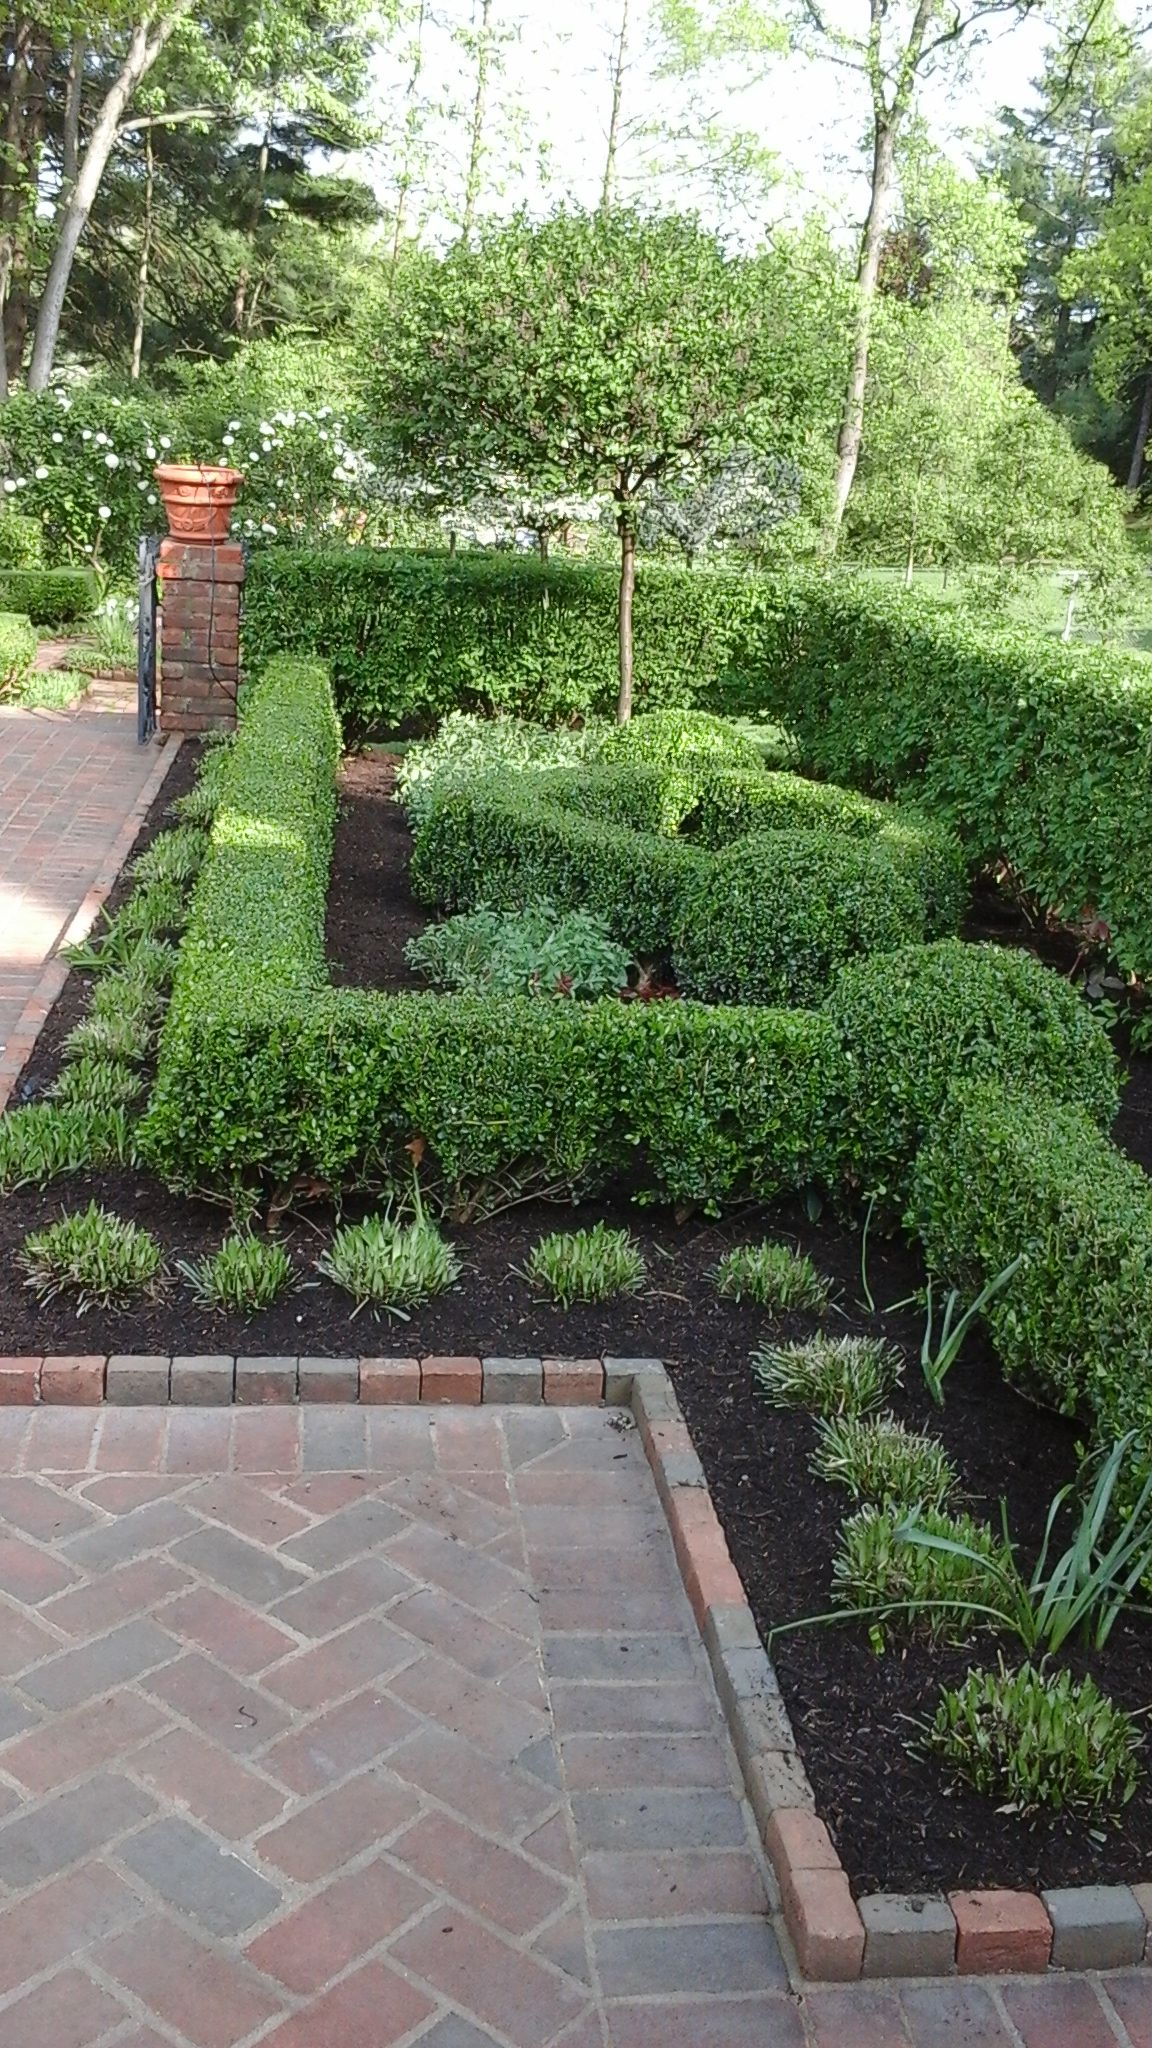 Formal English Garden Hedges Of Boxwoods And Burning Bushes Frame Beds Of Perennials Roses And Other Flowe Patio Garden Design Garden Hedges Boxwood Garden